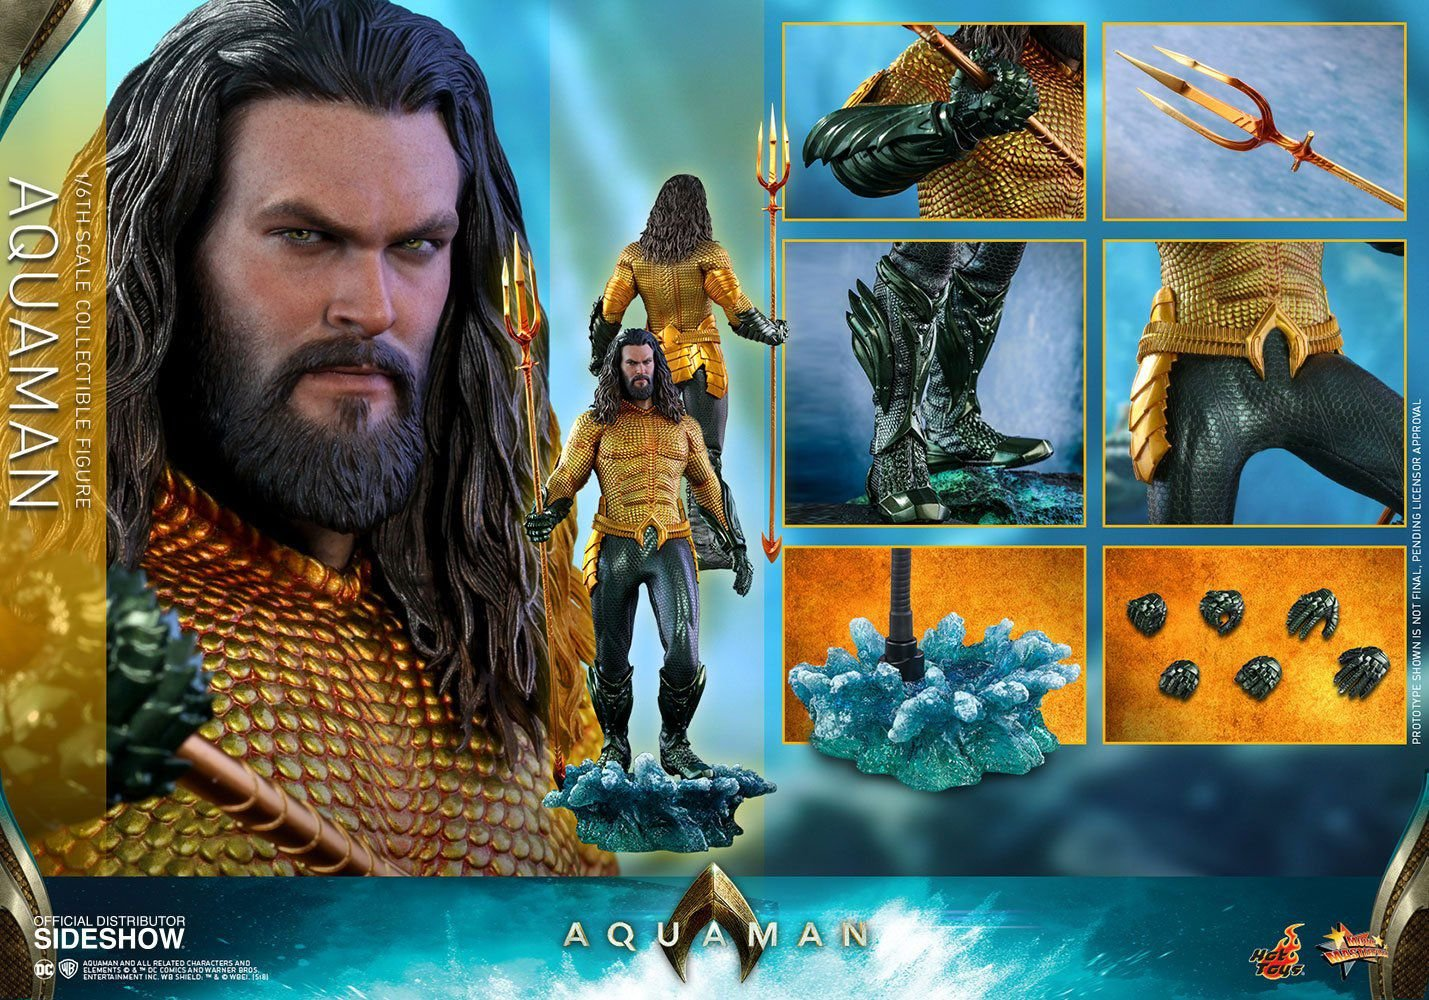 figurka-aquaman-hot-toys-17.jpg.big.jpg